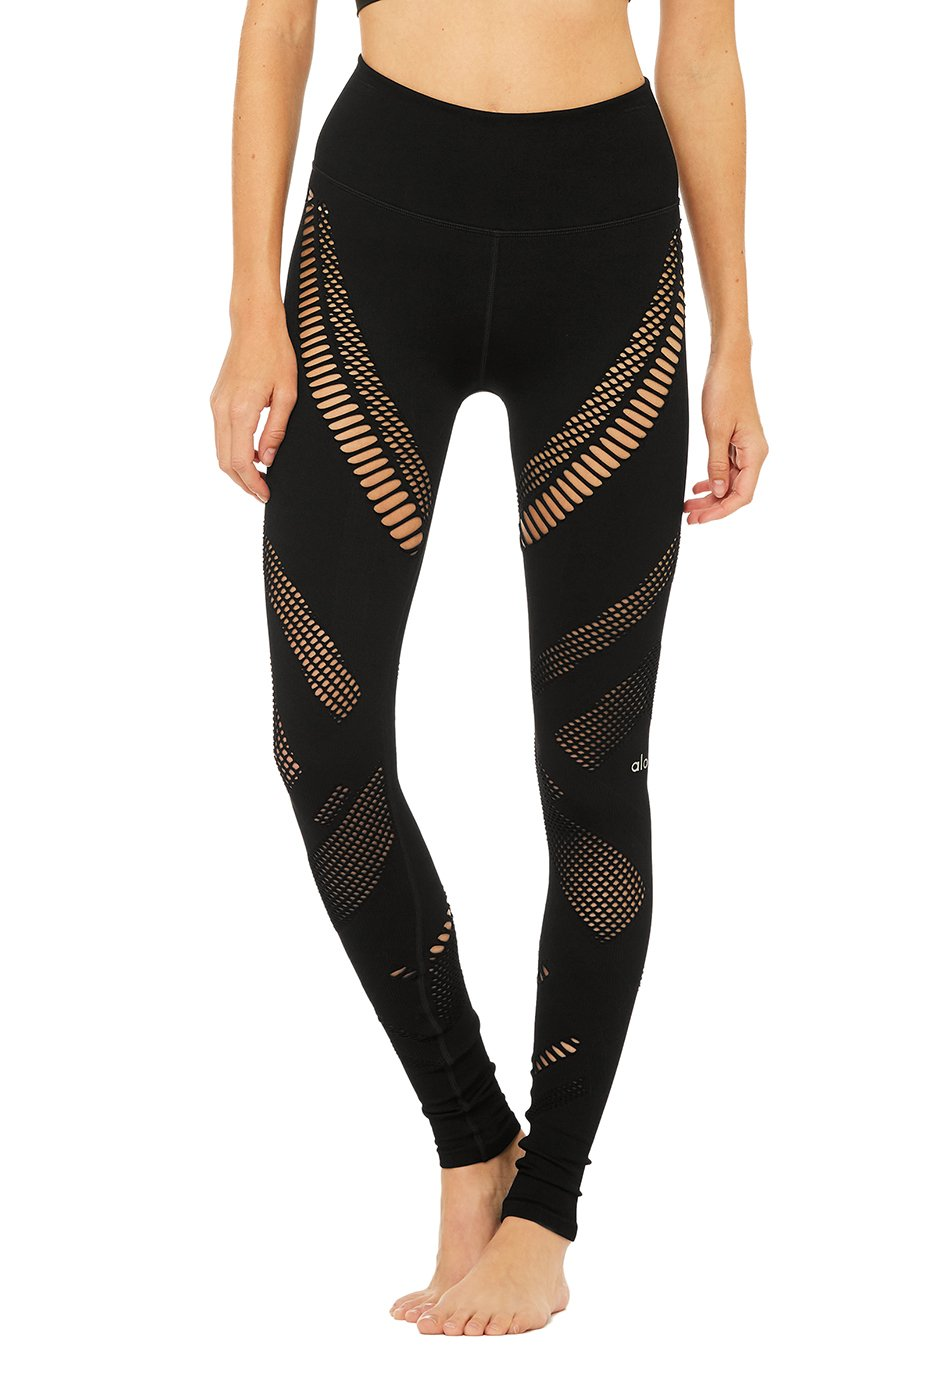 7e412d6fb8 Alo Yoga High-Waist Seamless Radiance Legging - Black – Soulcielite